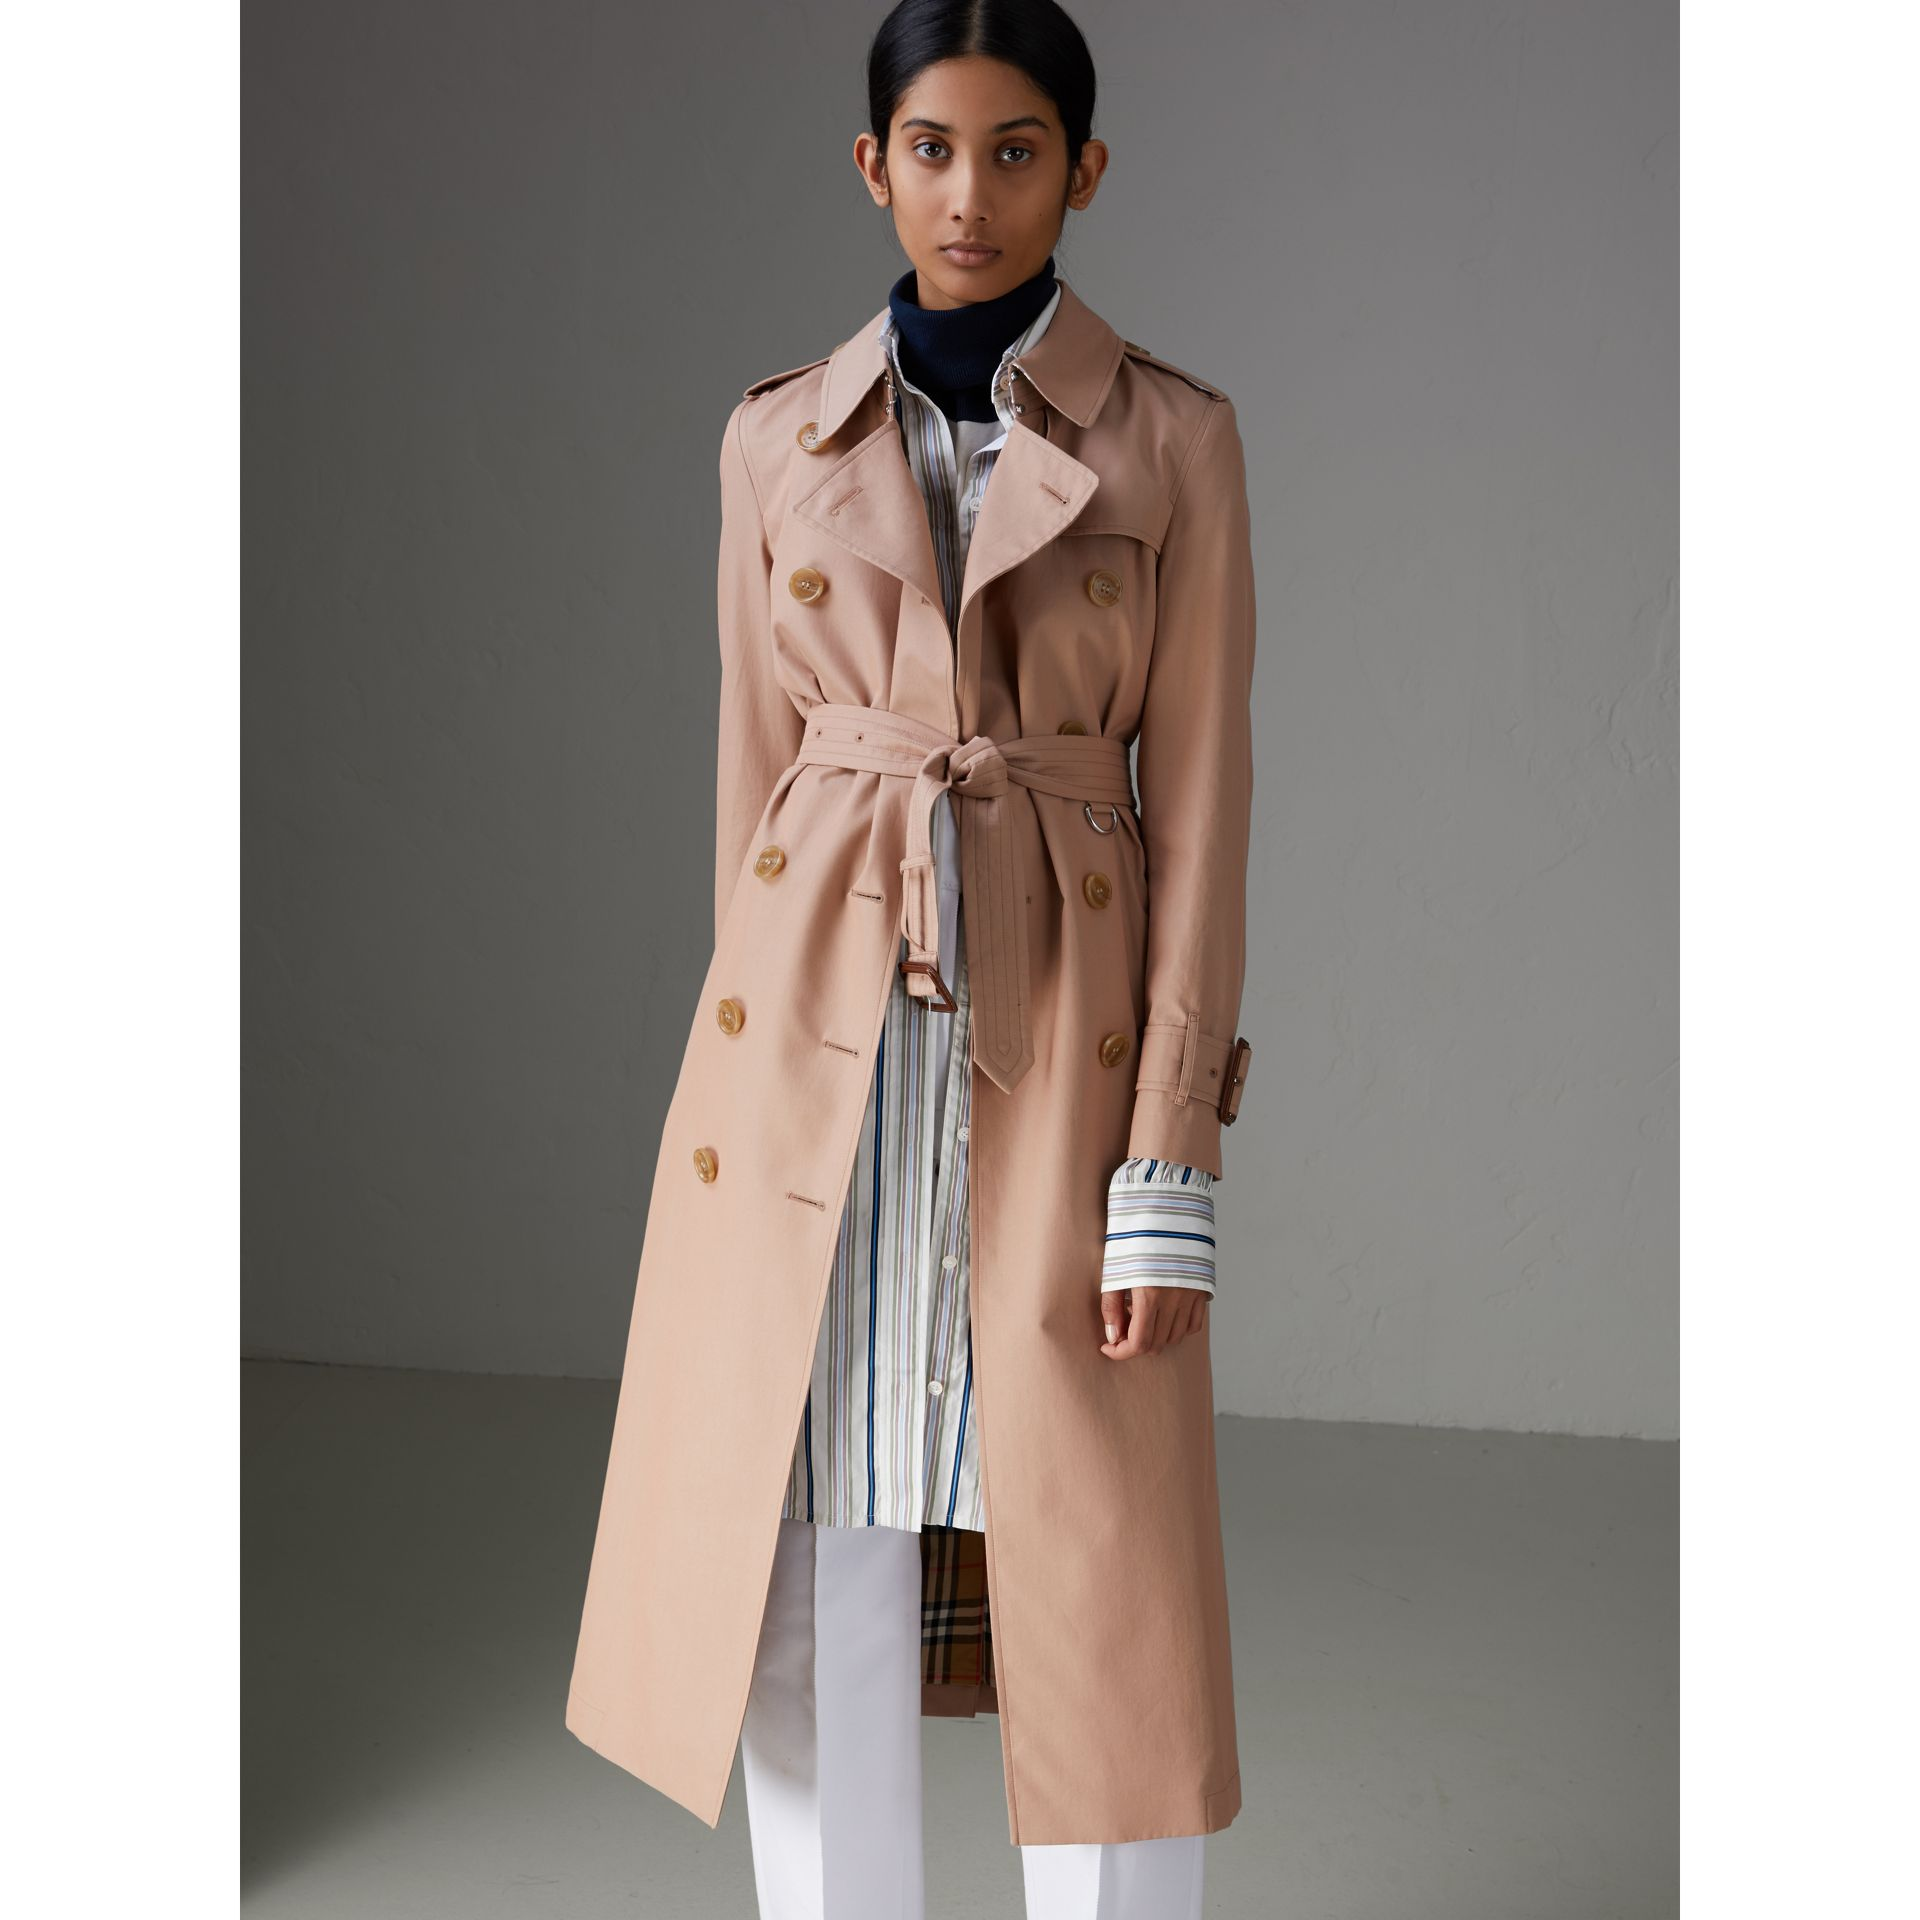 Tropical Gabardine Trench Coat in Pink Apricot - Women | Burberry Australia - gallery image 5